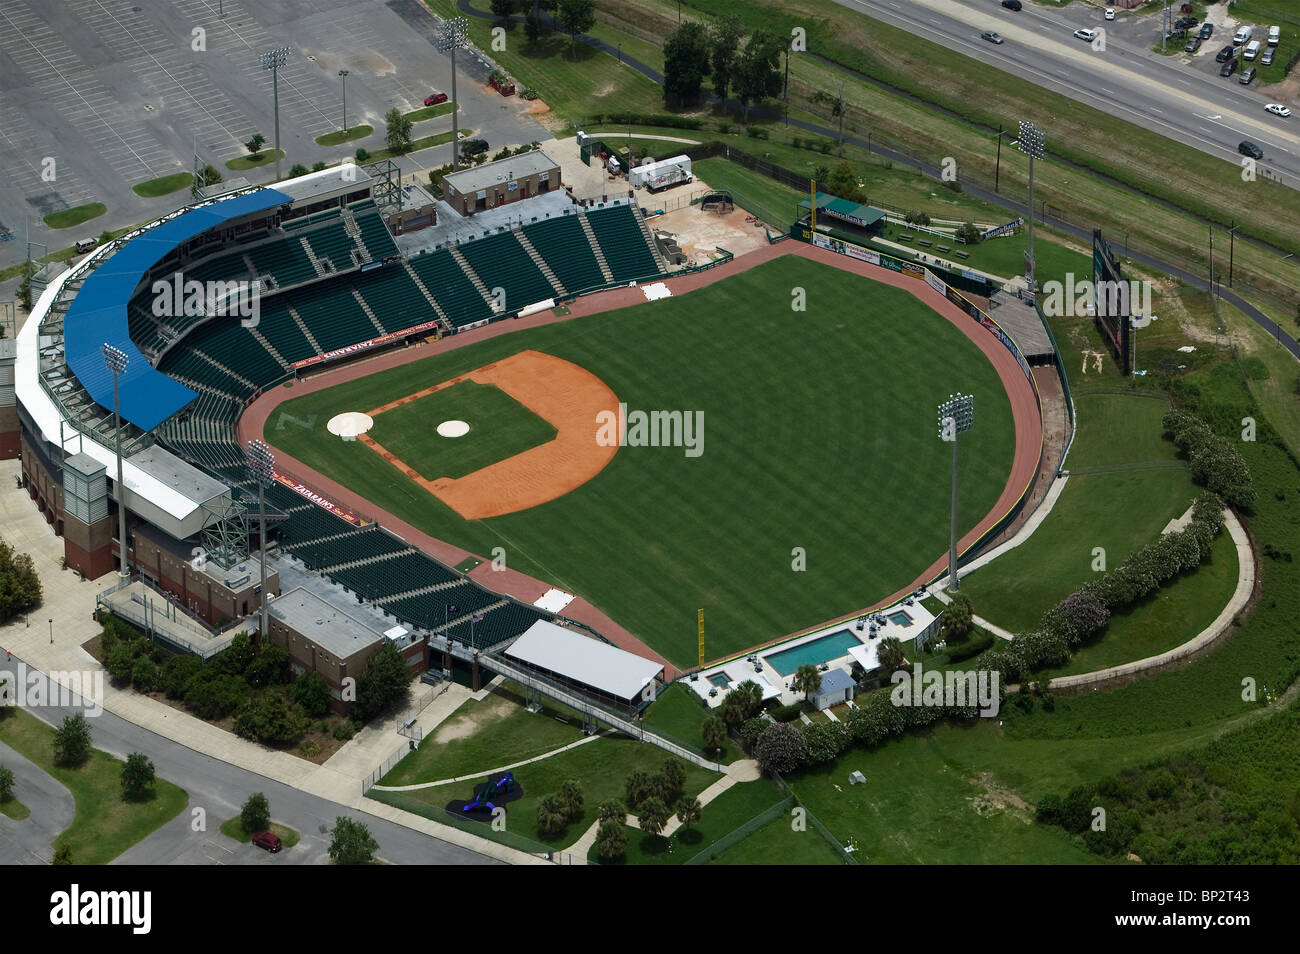 aerial view above Zephyr Field baseball stadium Metairie New Orleans Louisiana - Stock Image